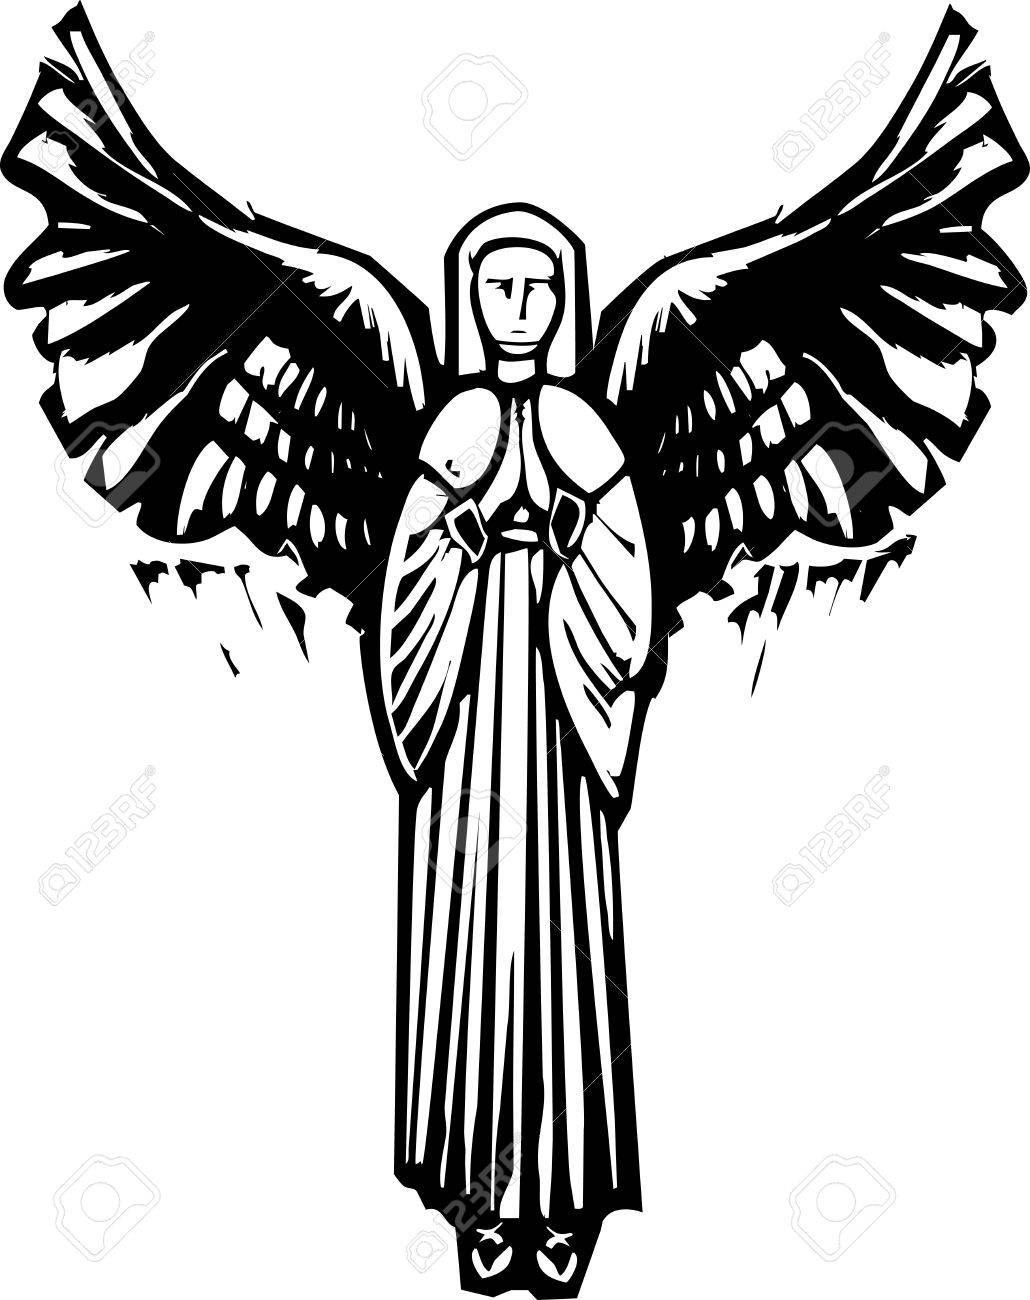 1030x1300 Woman Angel With Wings Praying In A Woodcut Style Image Royalty